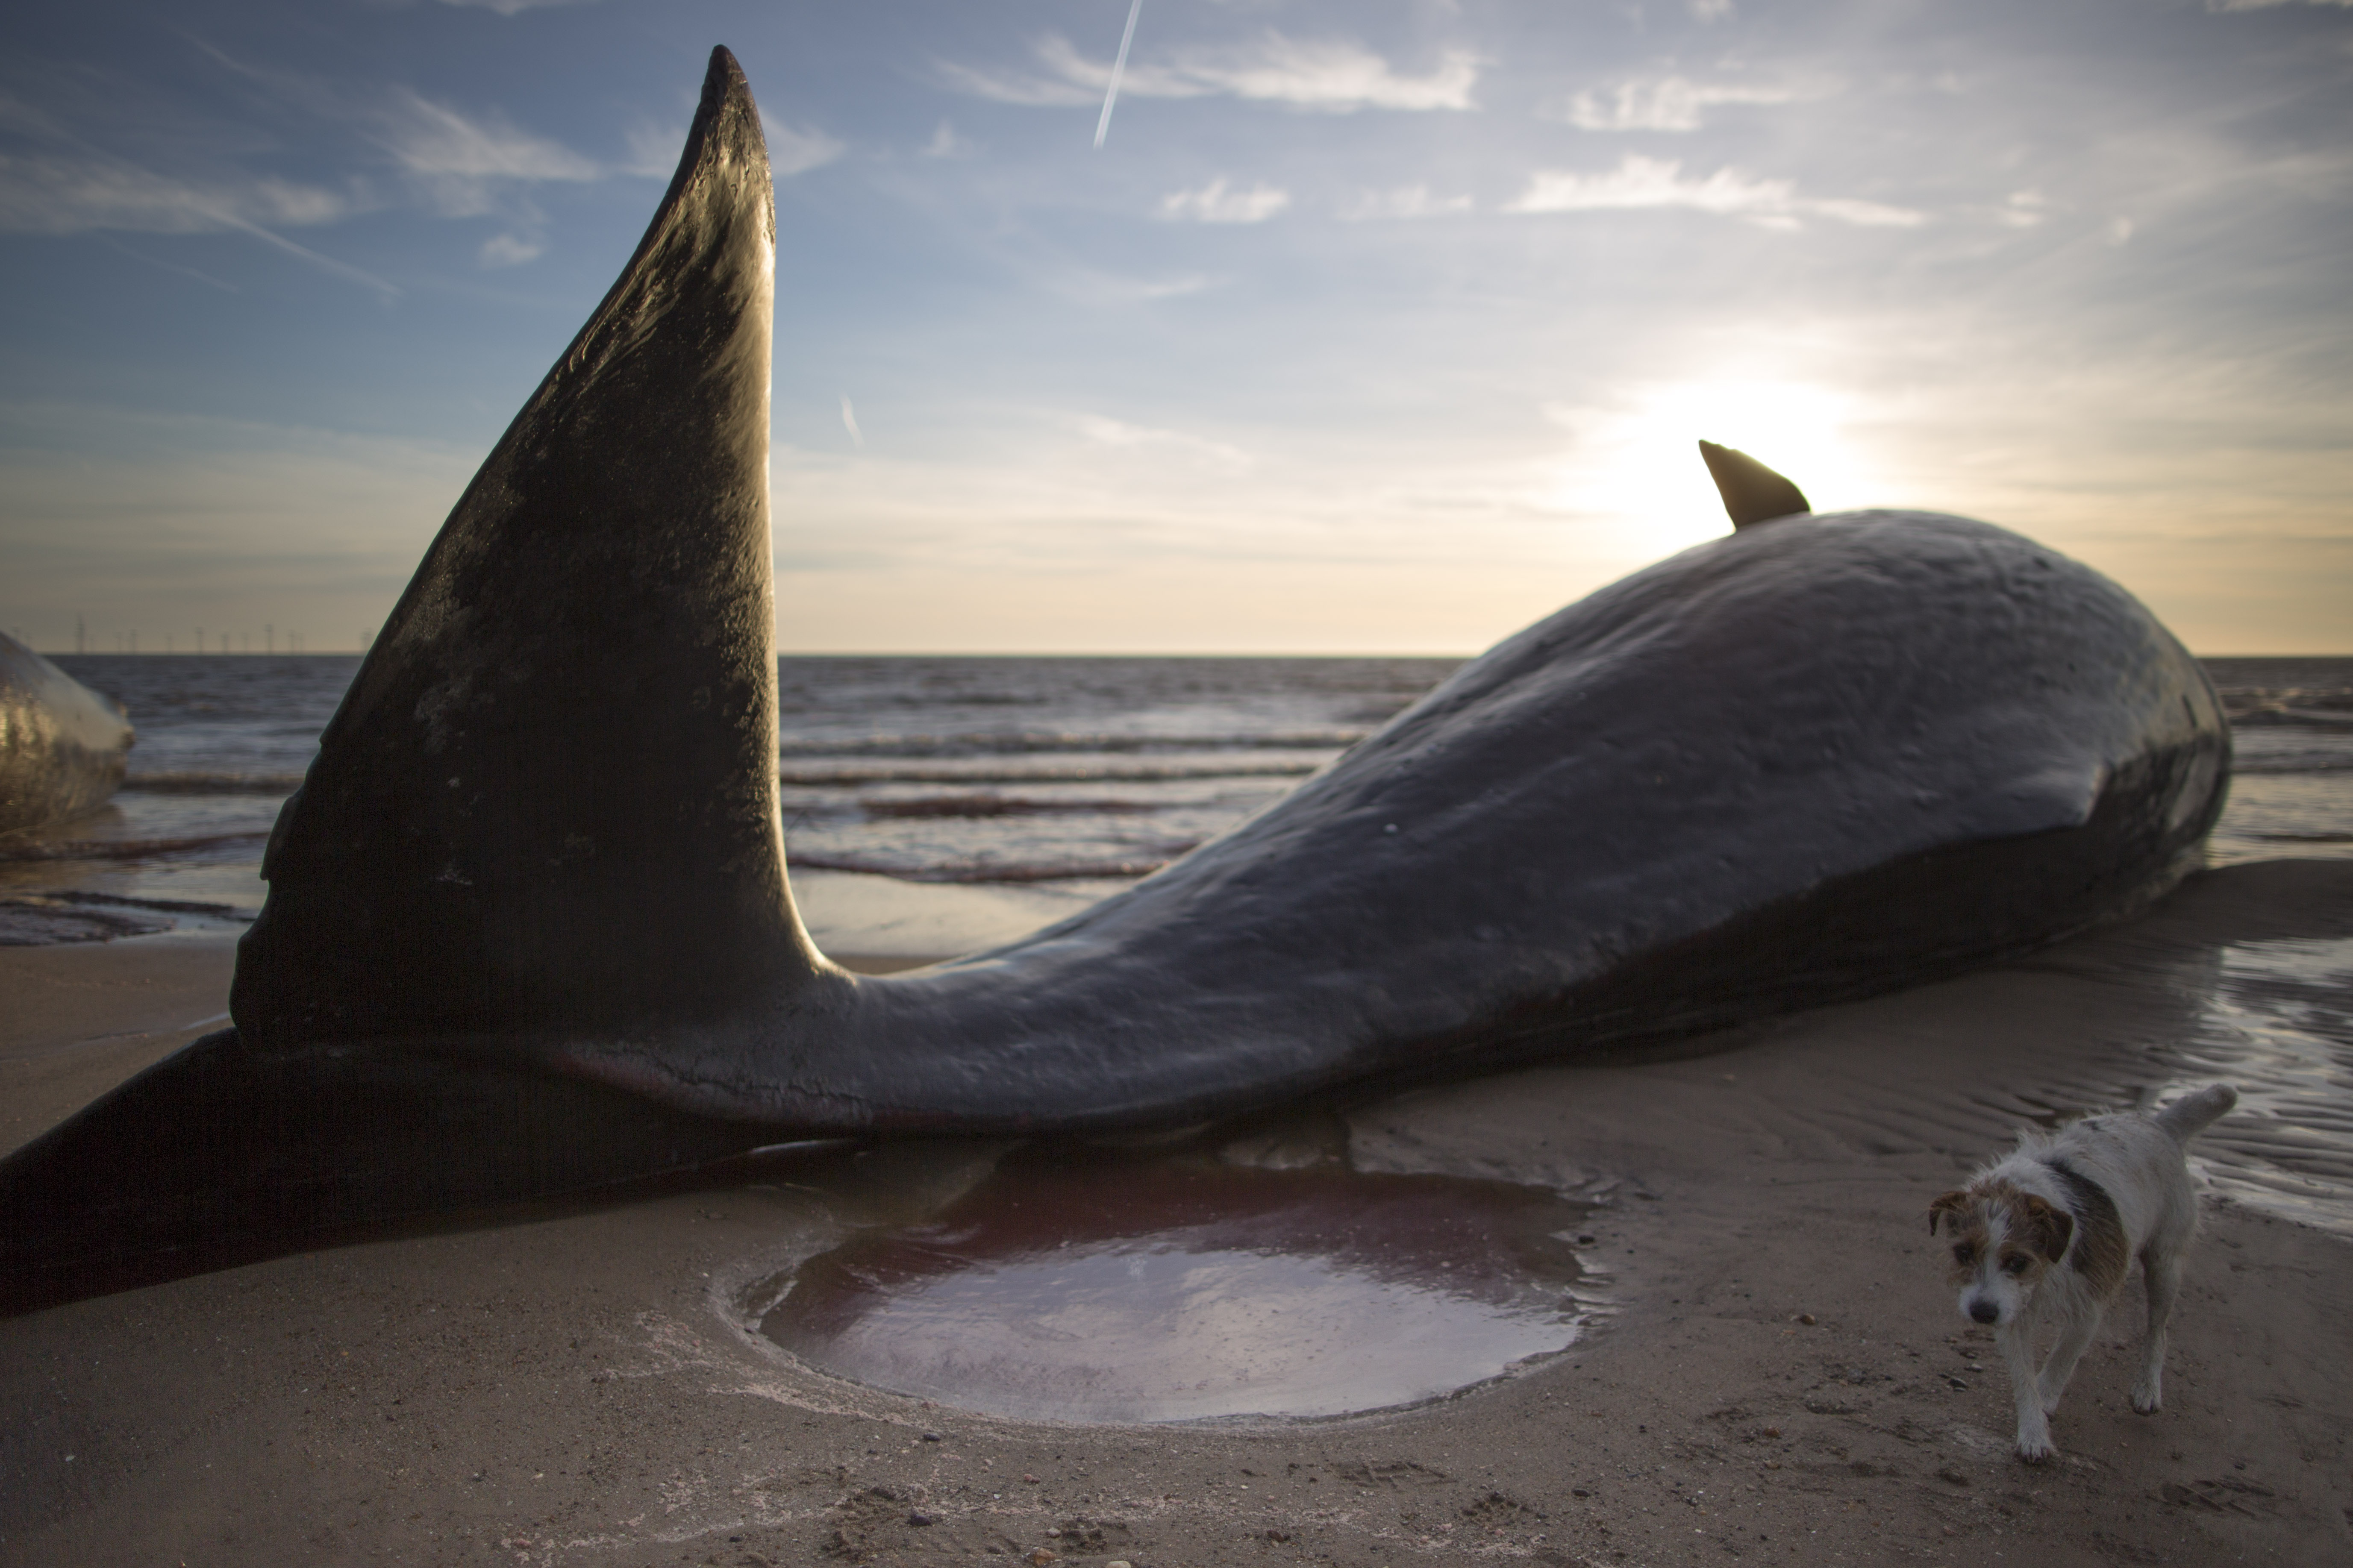 One of three sperm whales, which were found washed ashore, lays on a beach in Skegness, England, on Jan. 25, 2016.